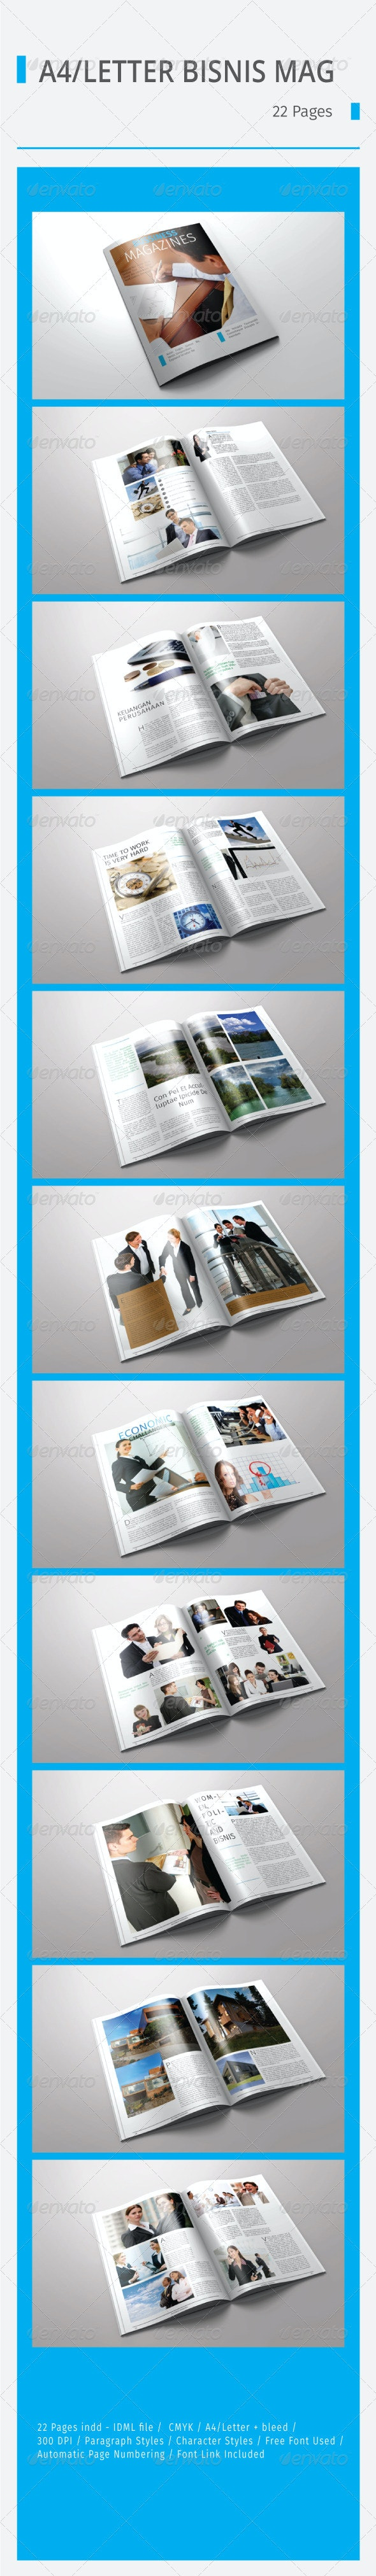 A4 / Letter Bussiness Magazines - Magazines Print Templates